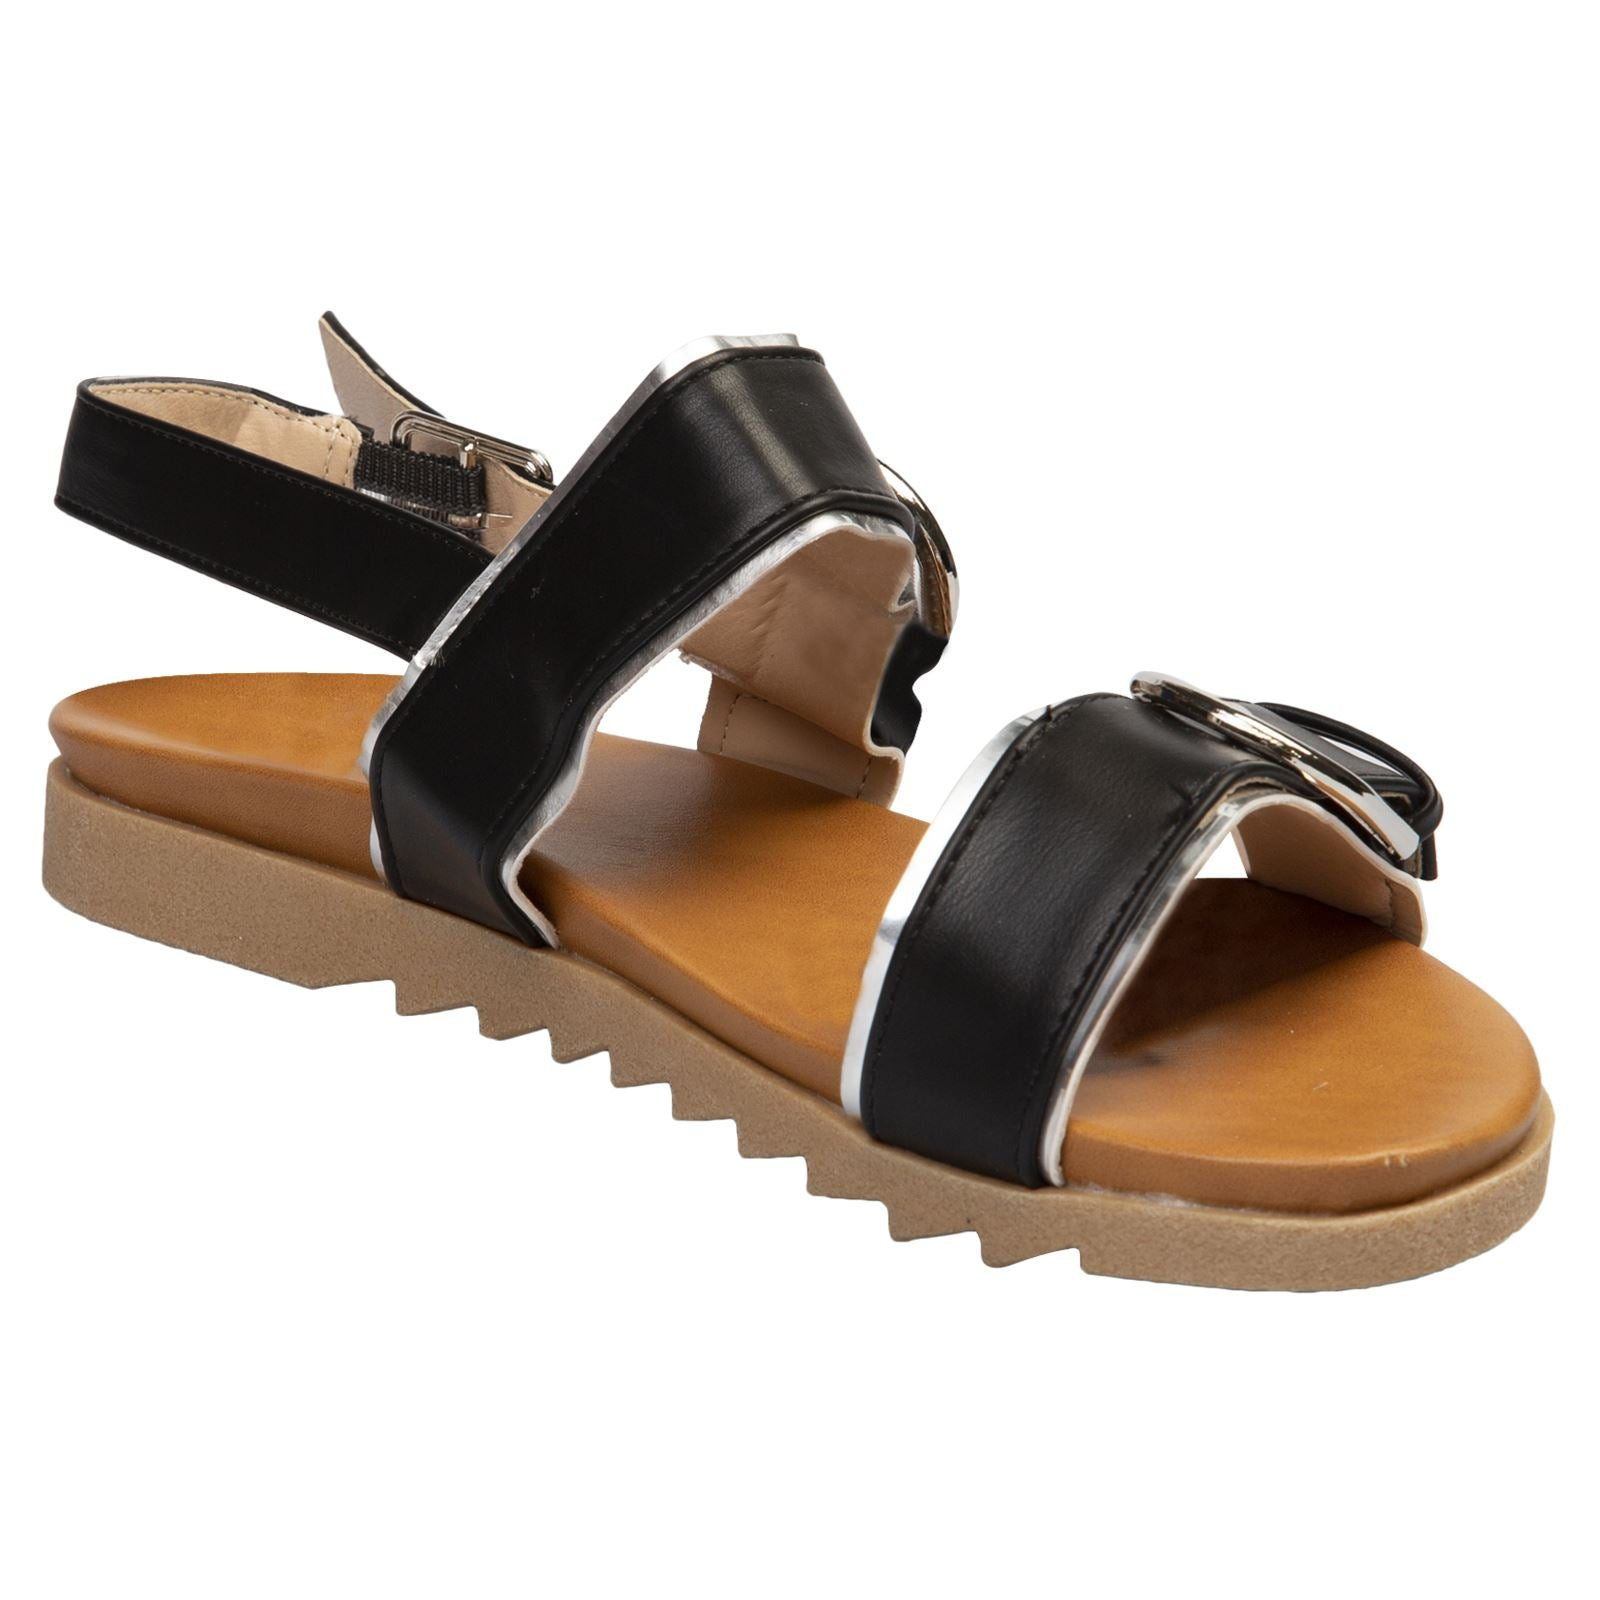 Alice Buckle Detail Sandals in Black Faux Leather - Feet First Fashion